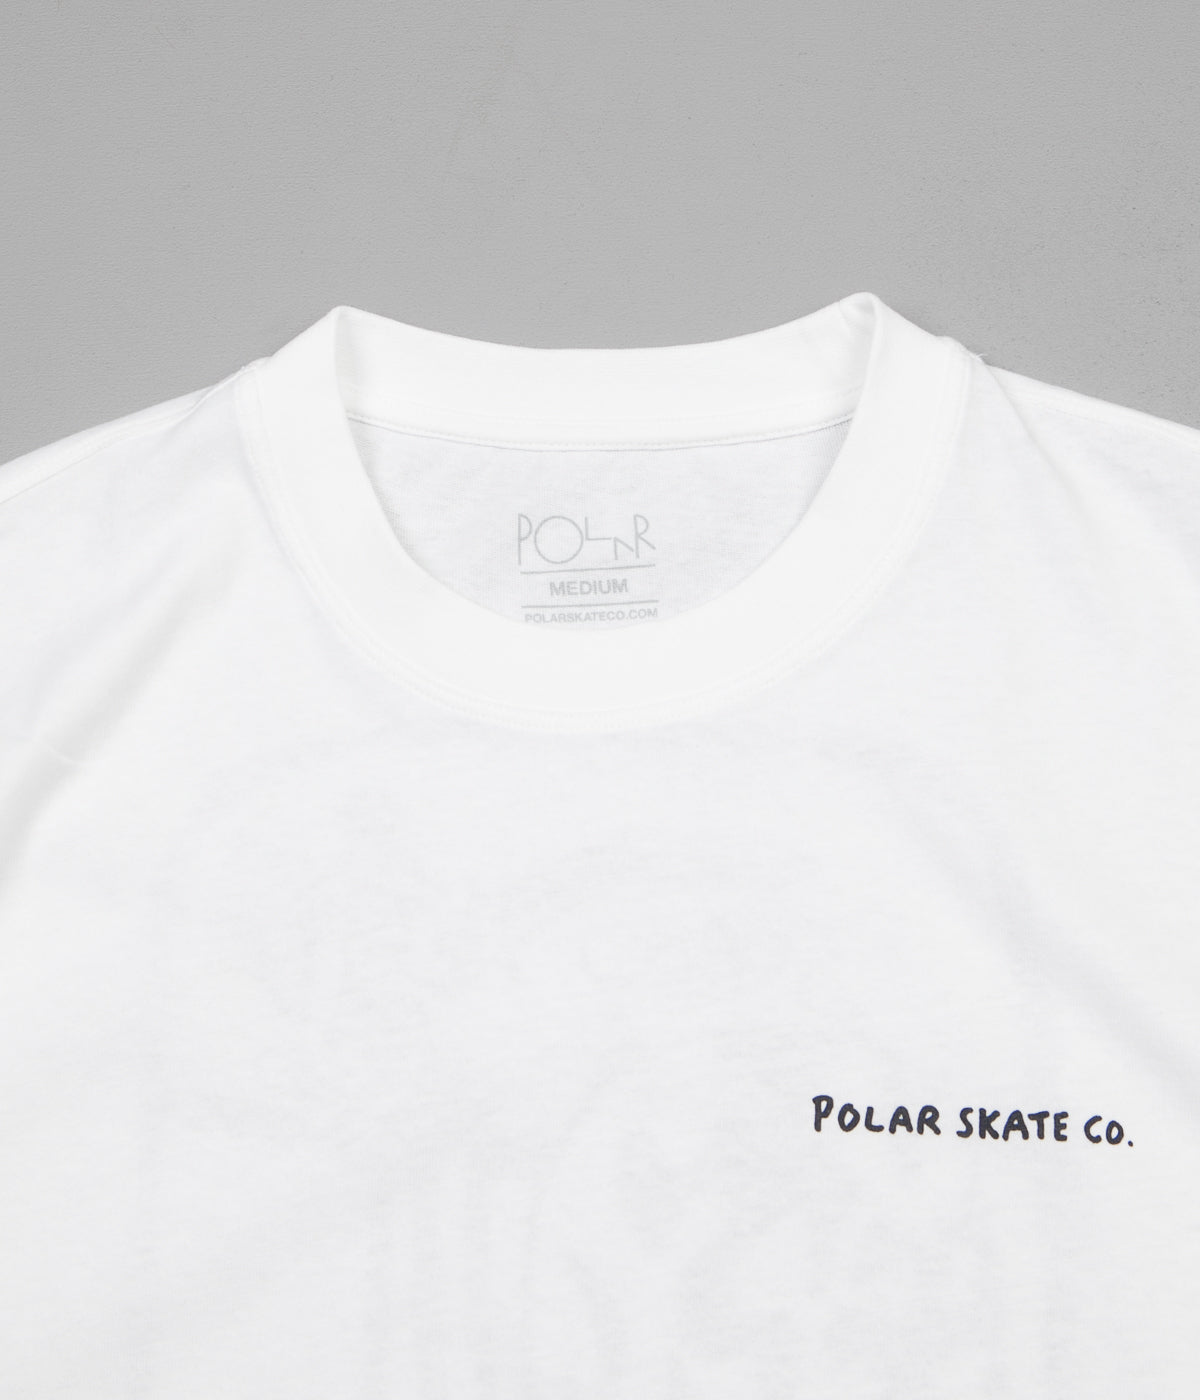 Polar World Ending T-Shirt - White